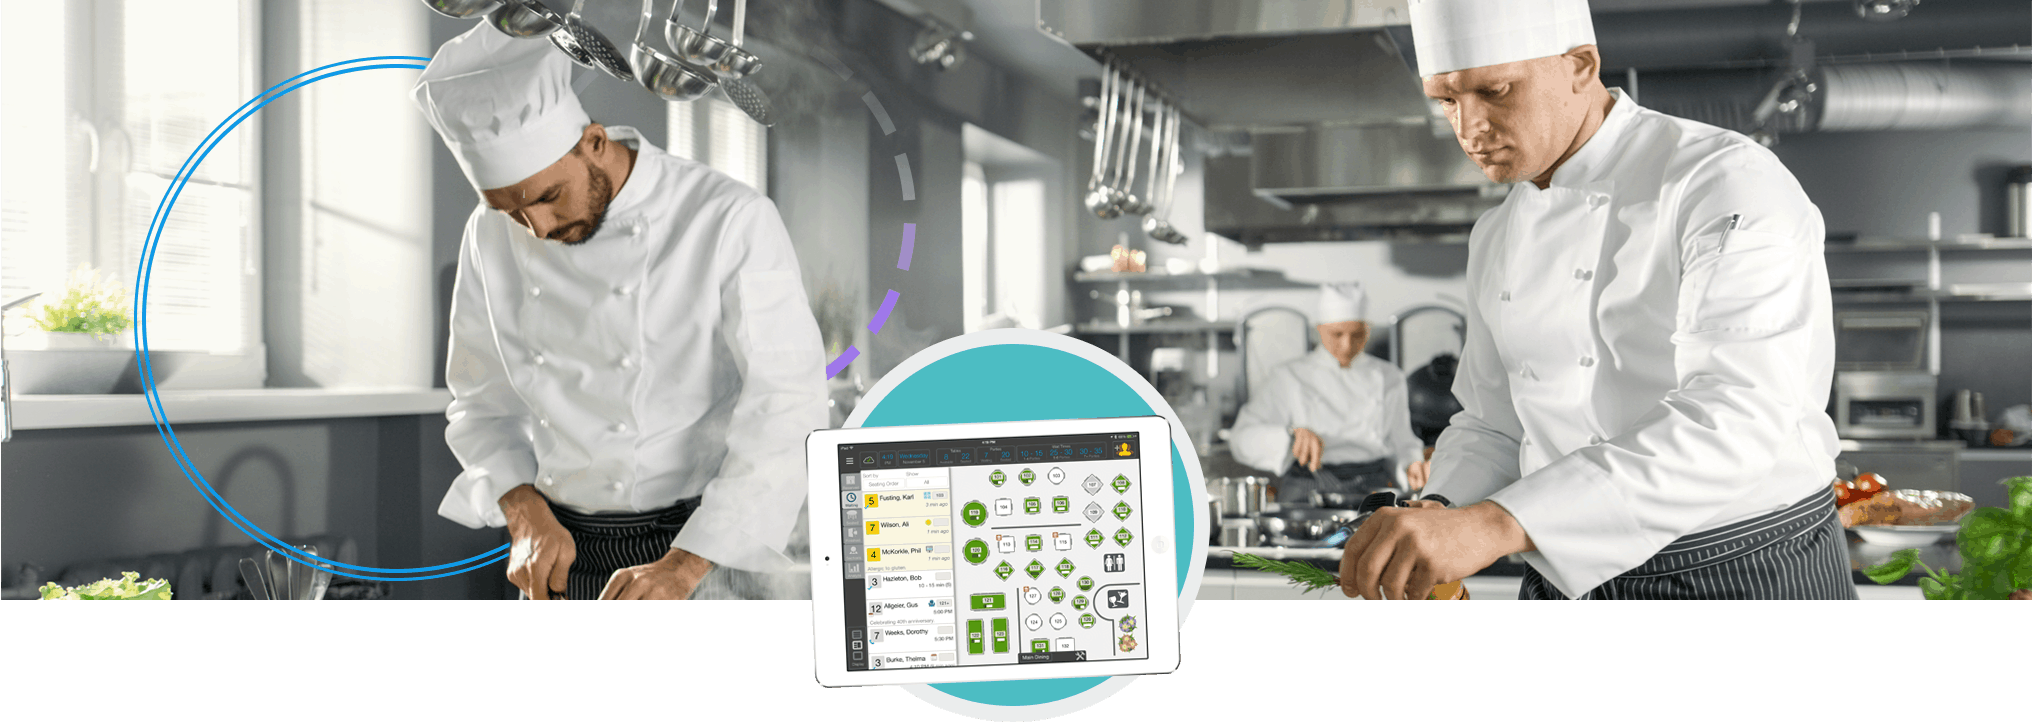 Two chefs cooking with table management iPad